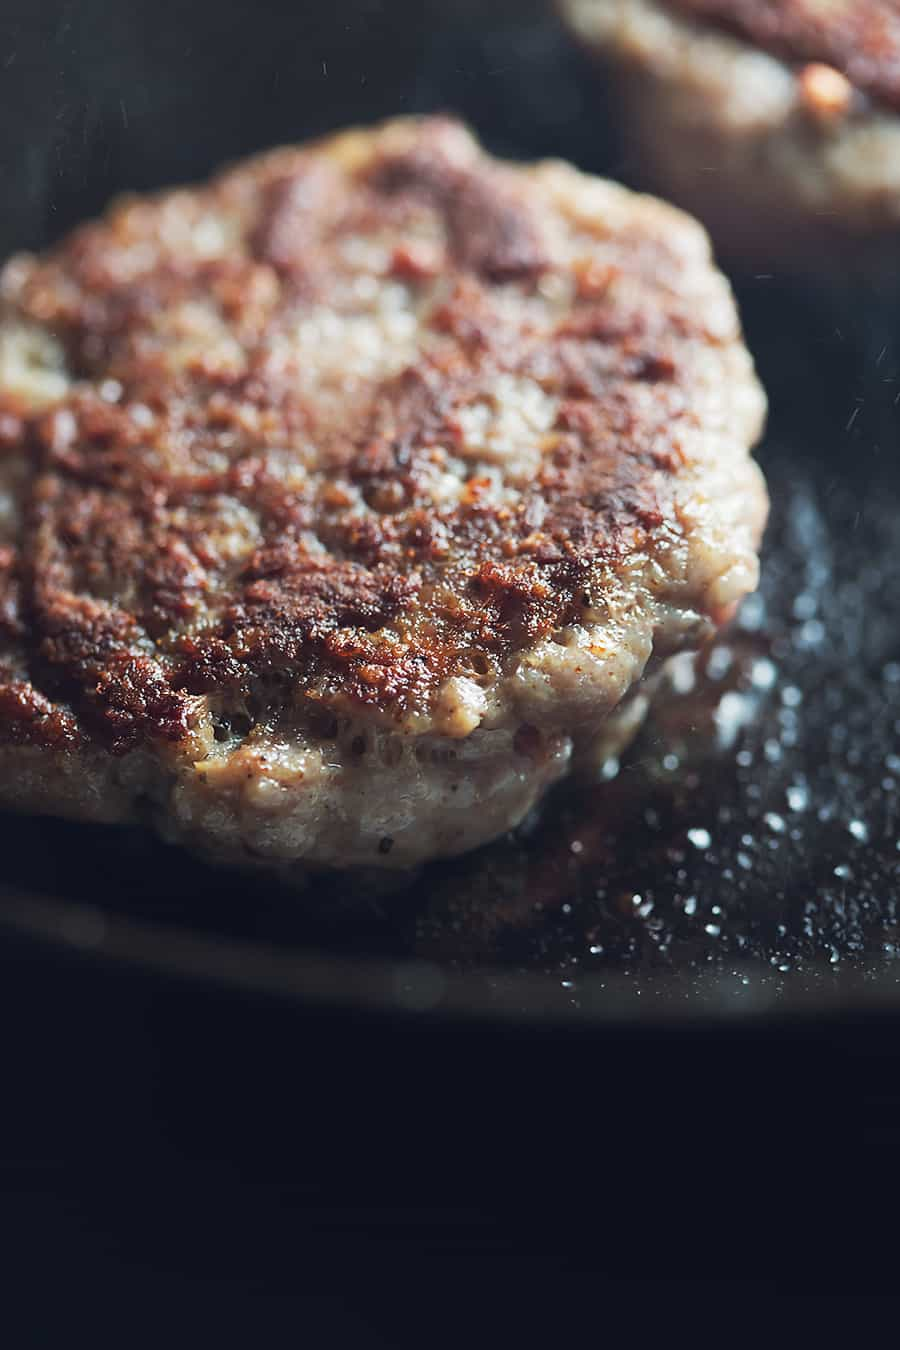 sausage patty cooking in a cast iron skillet